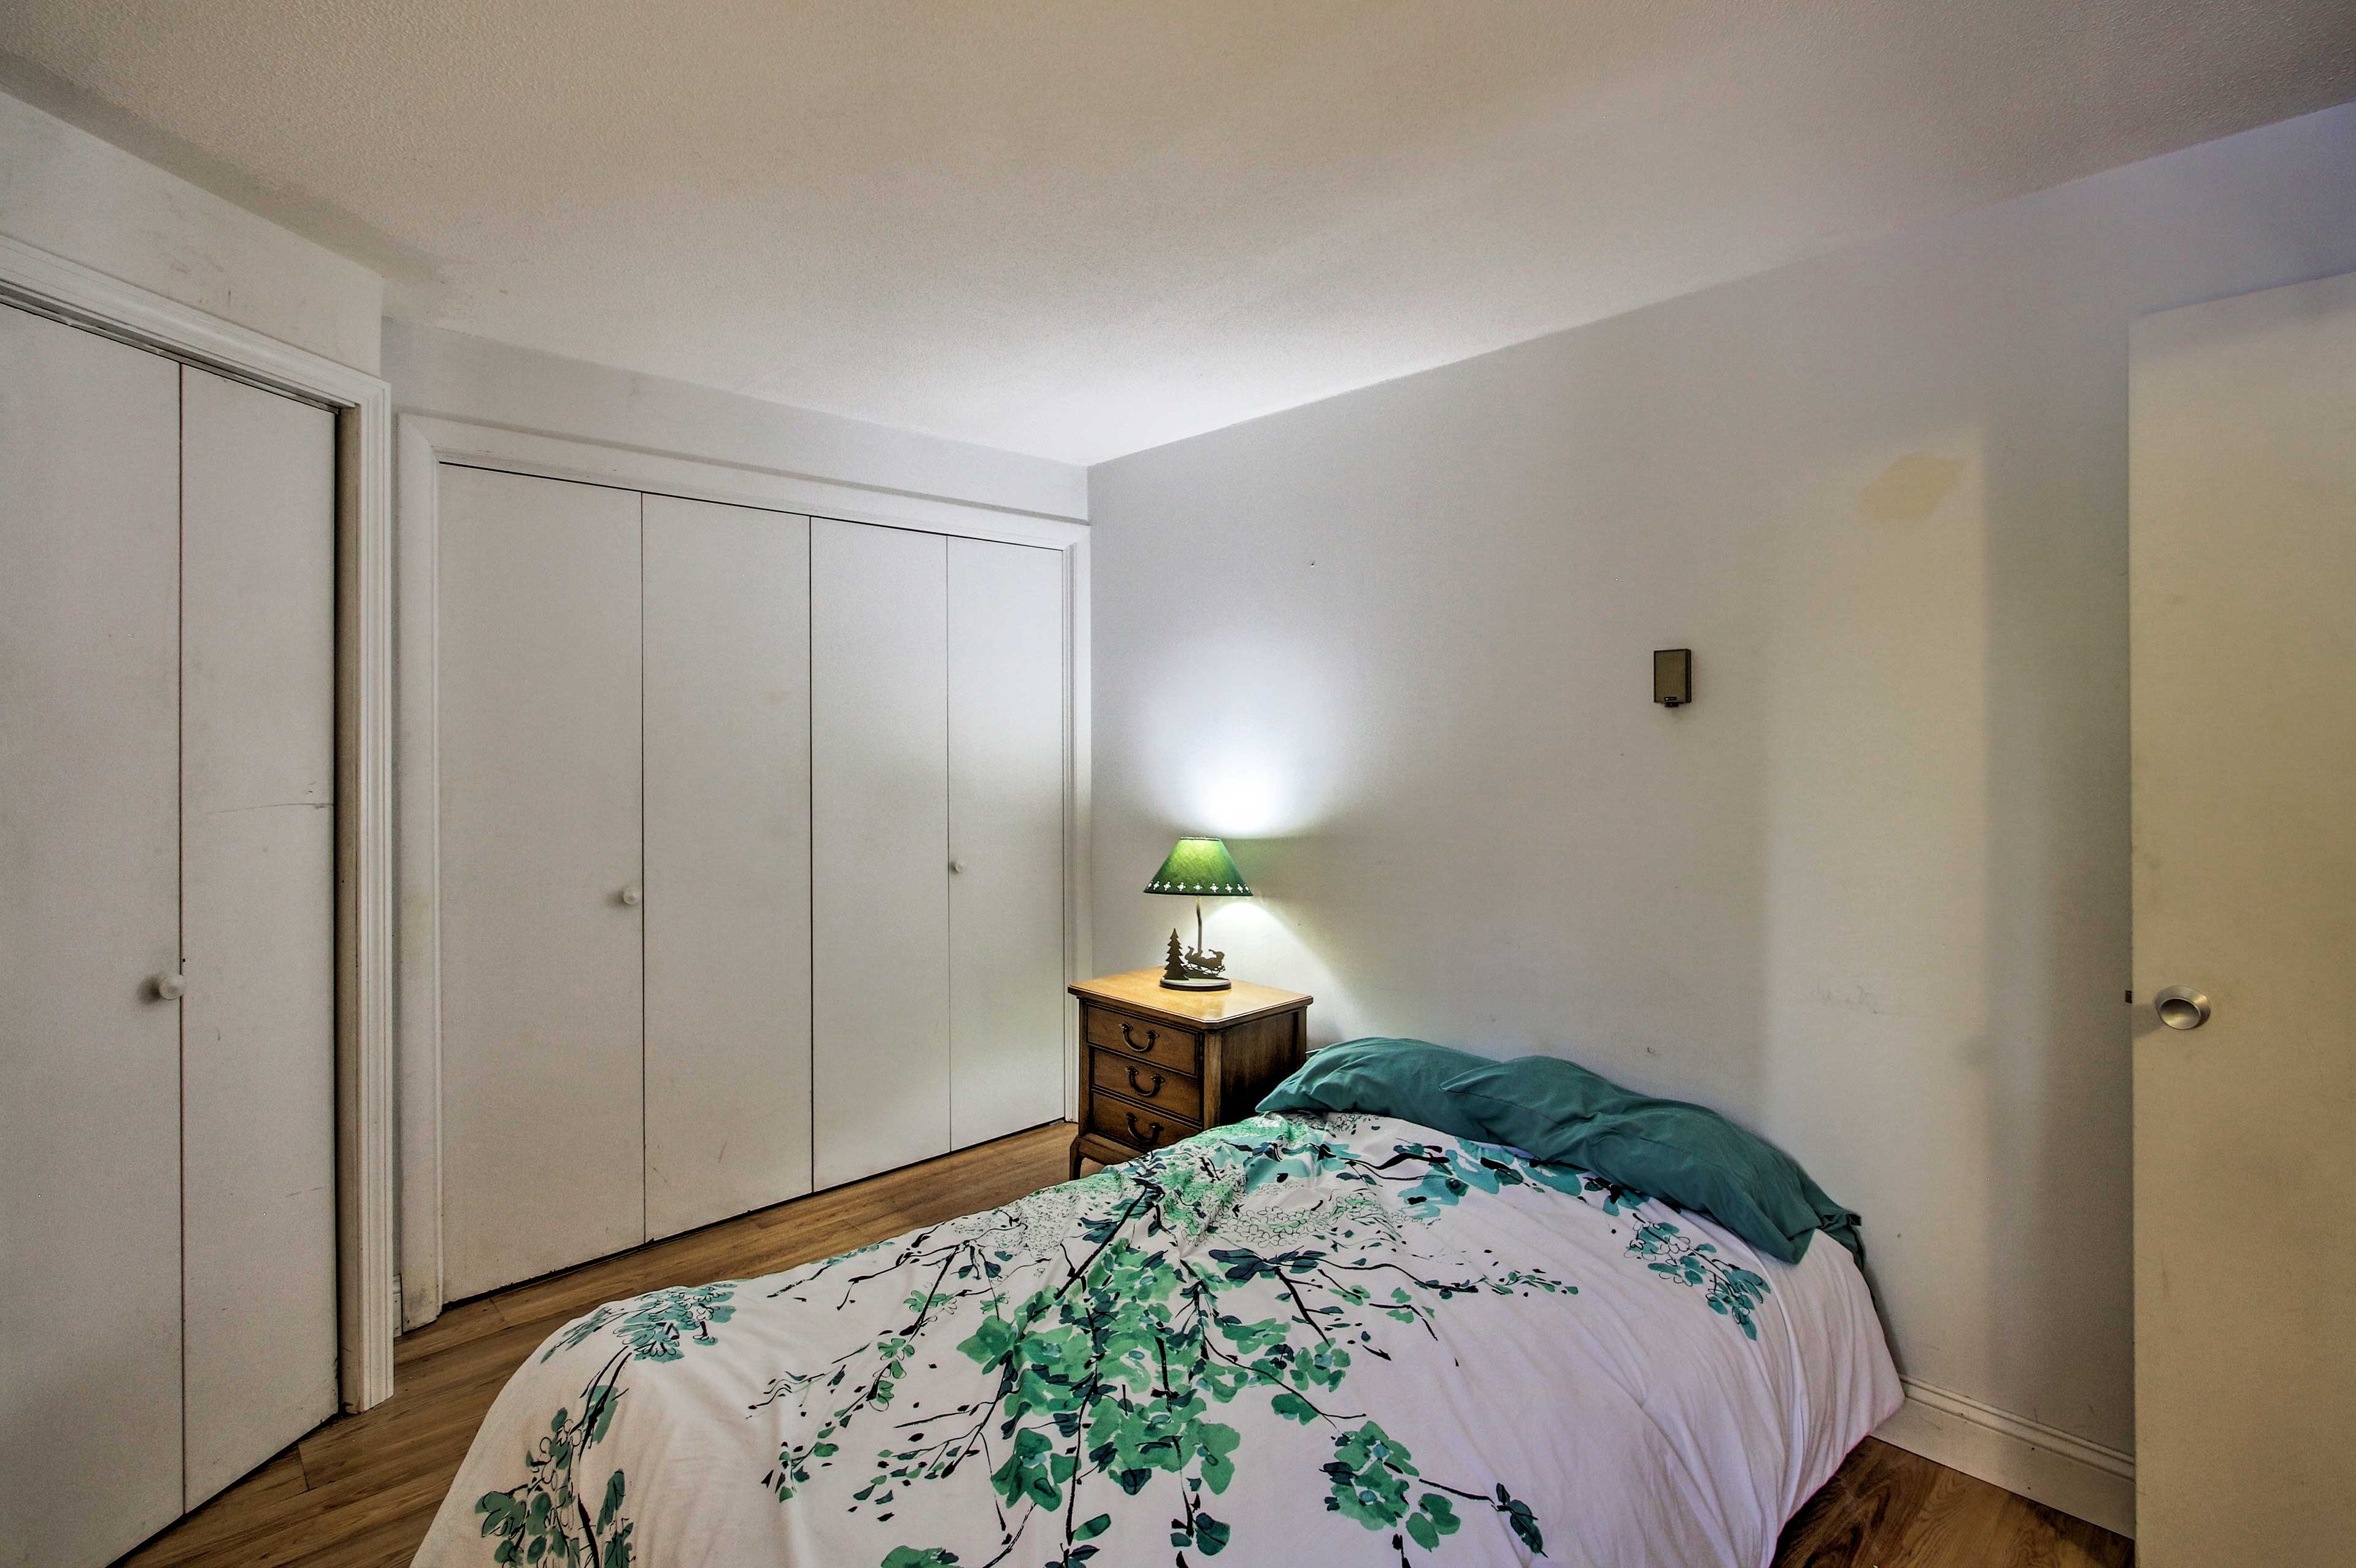 The second bedroom is outfitted with a full bed.